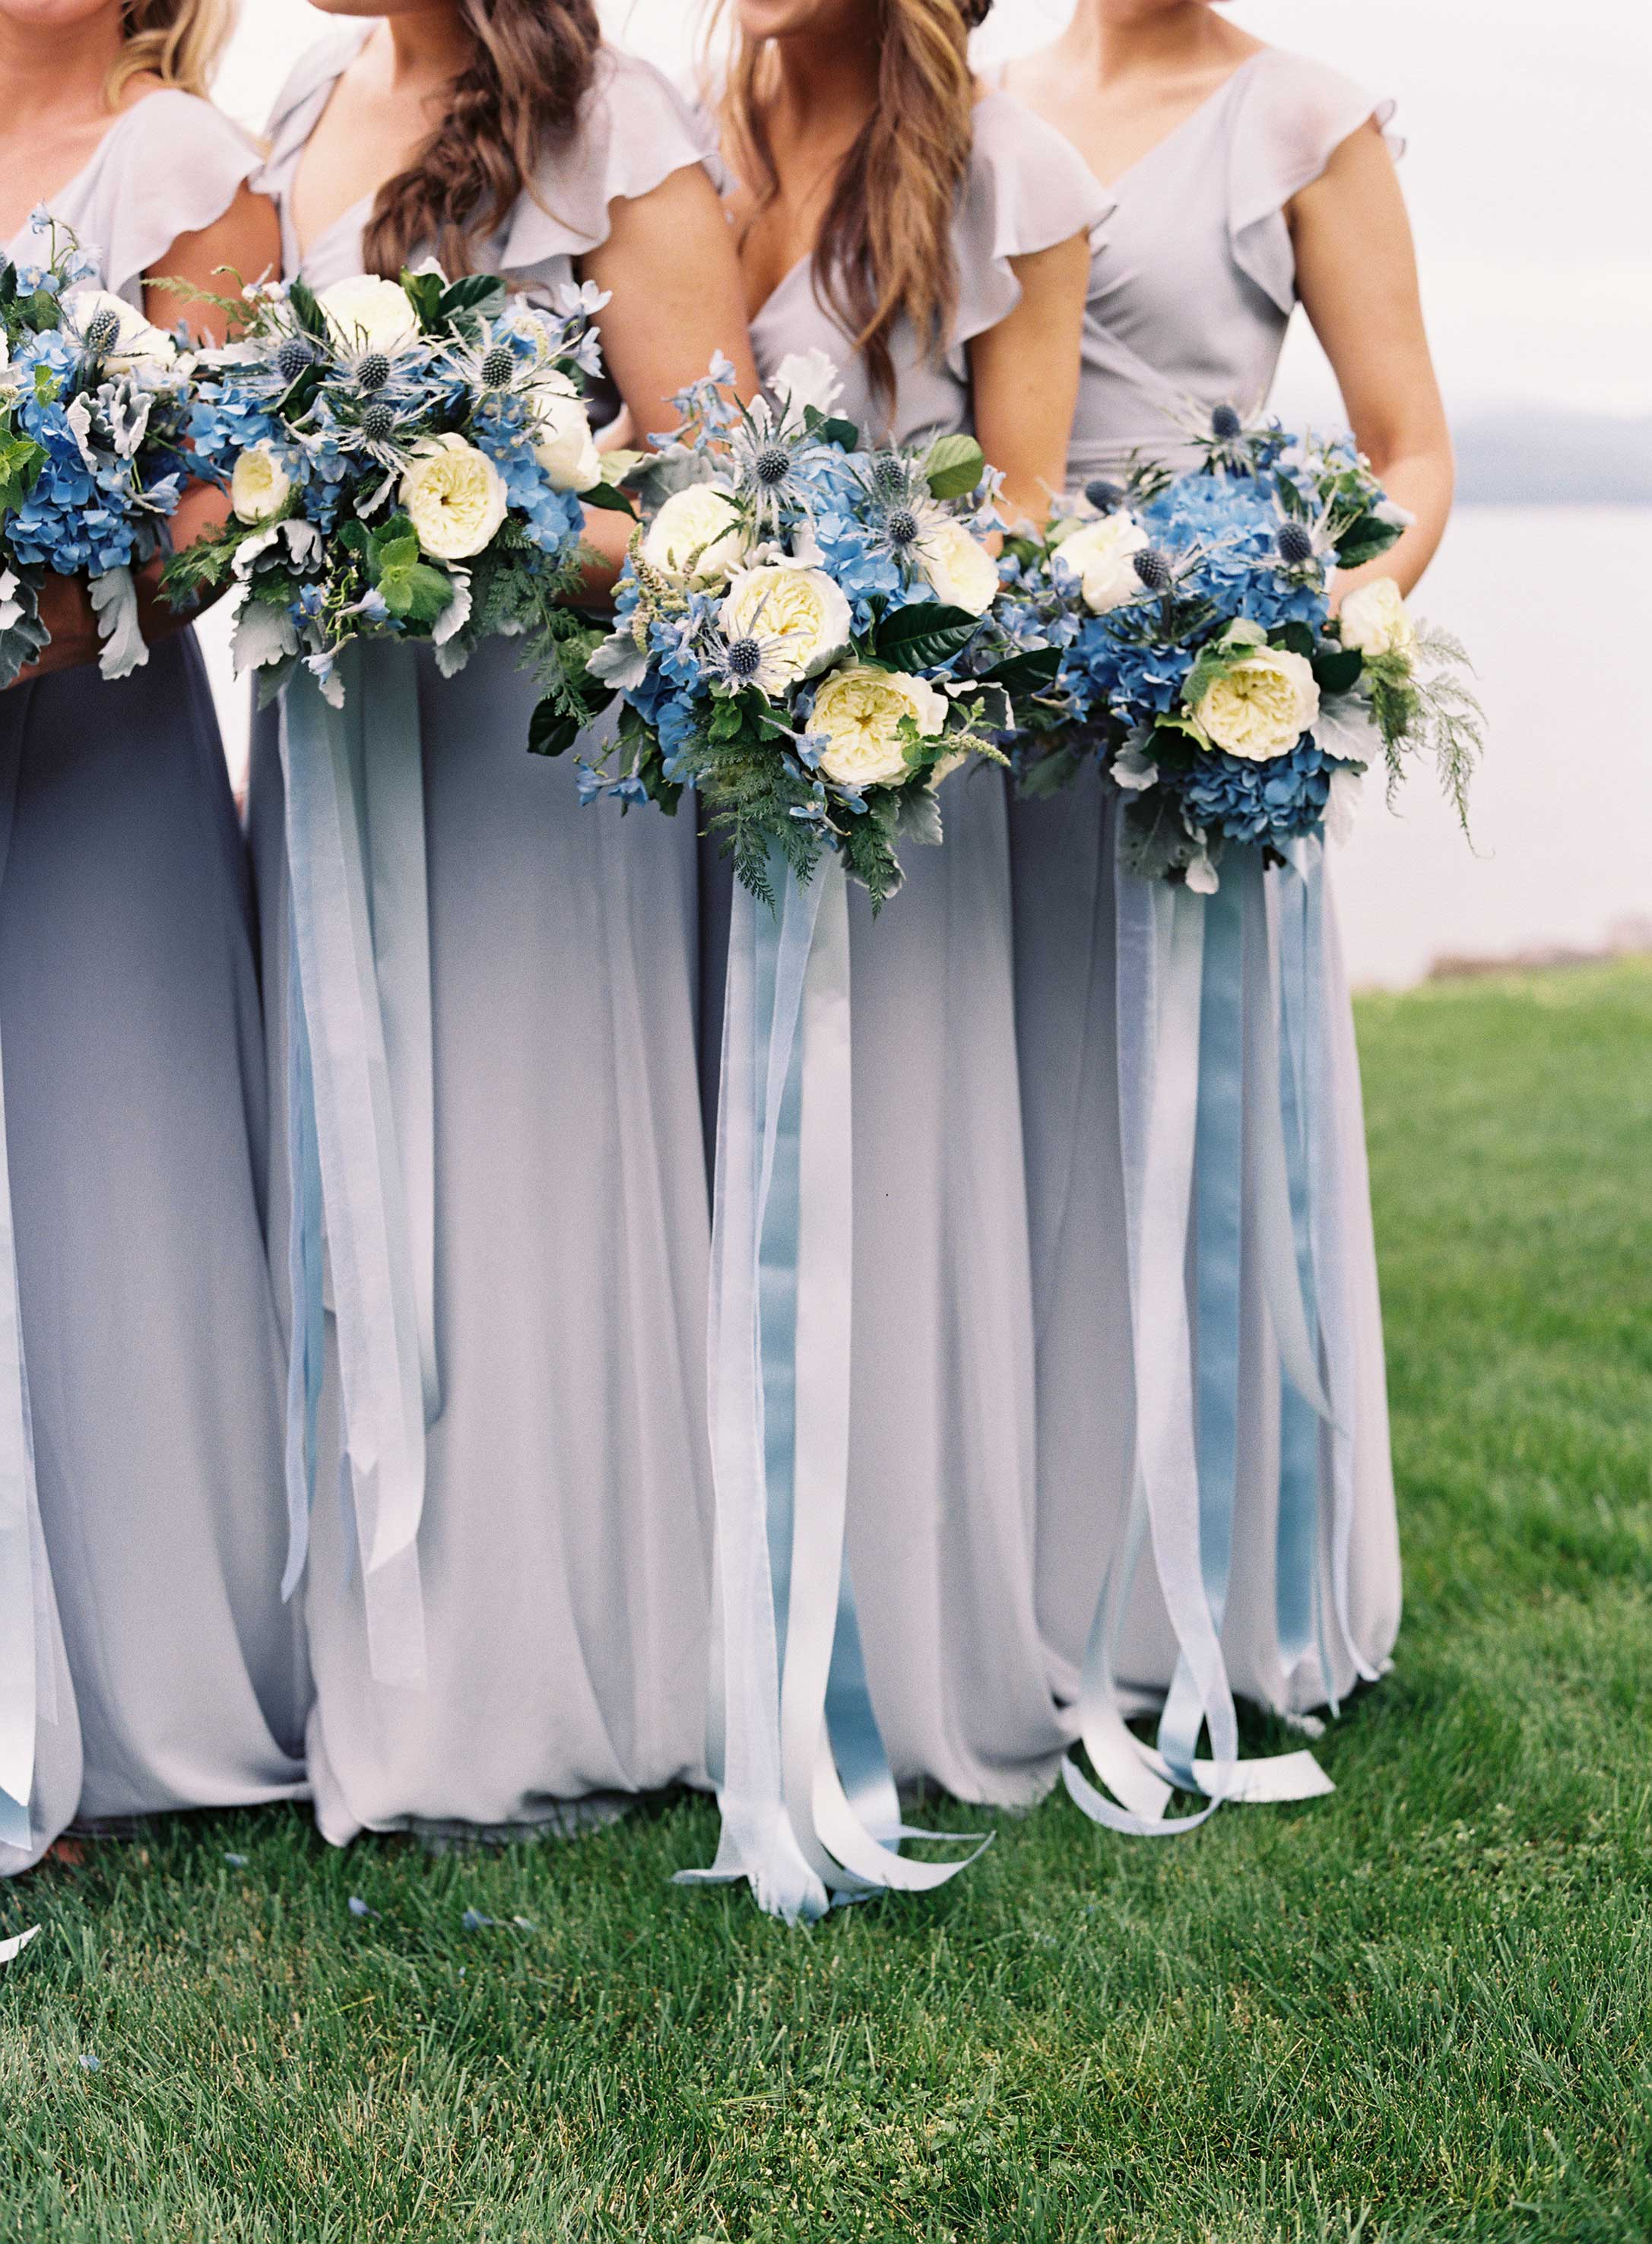 Bridesmaids in light blue grey Joanna August bridesmaid dresses with thistle bouquets